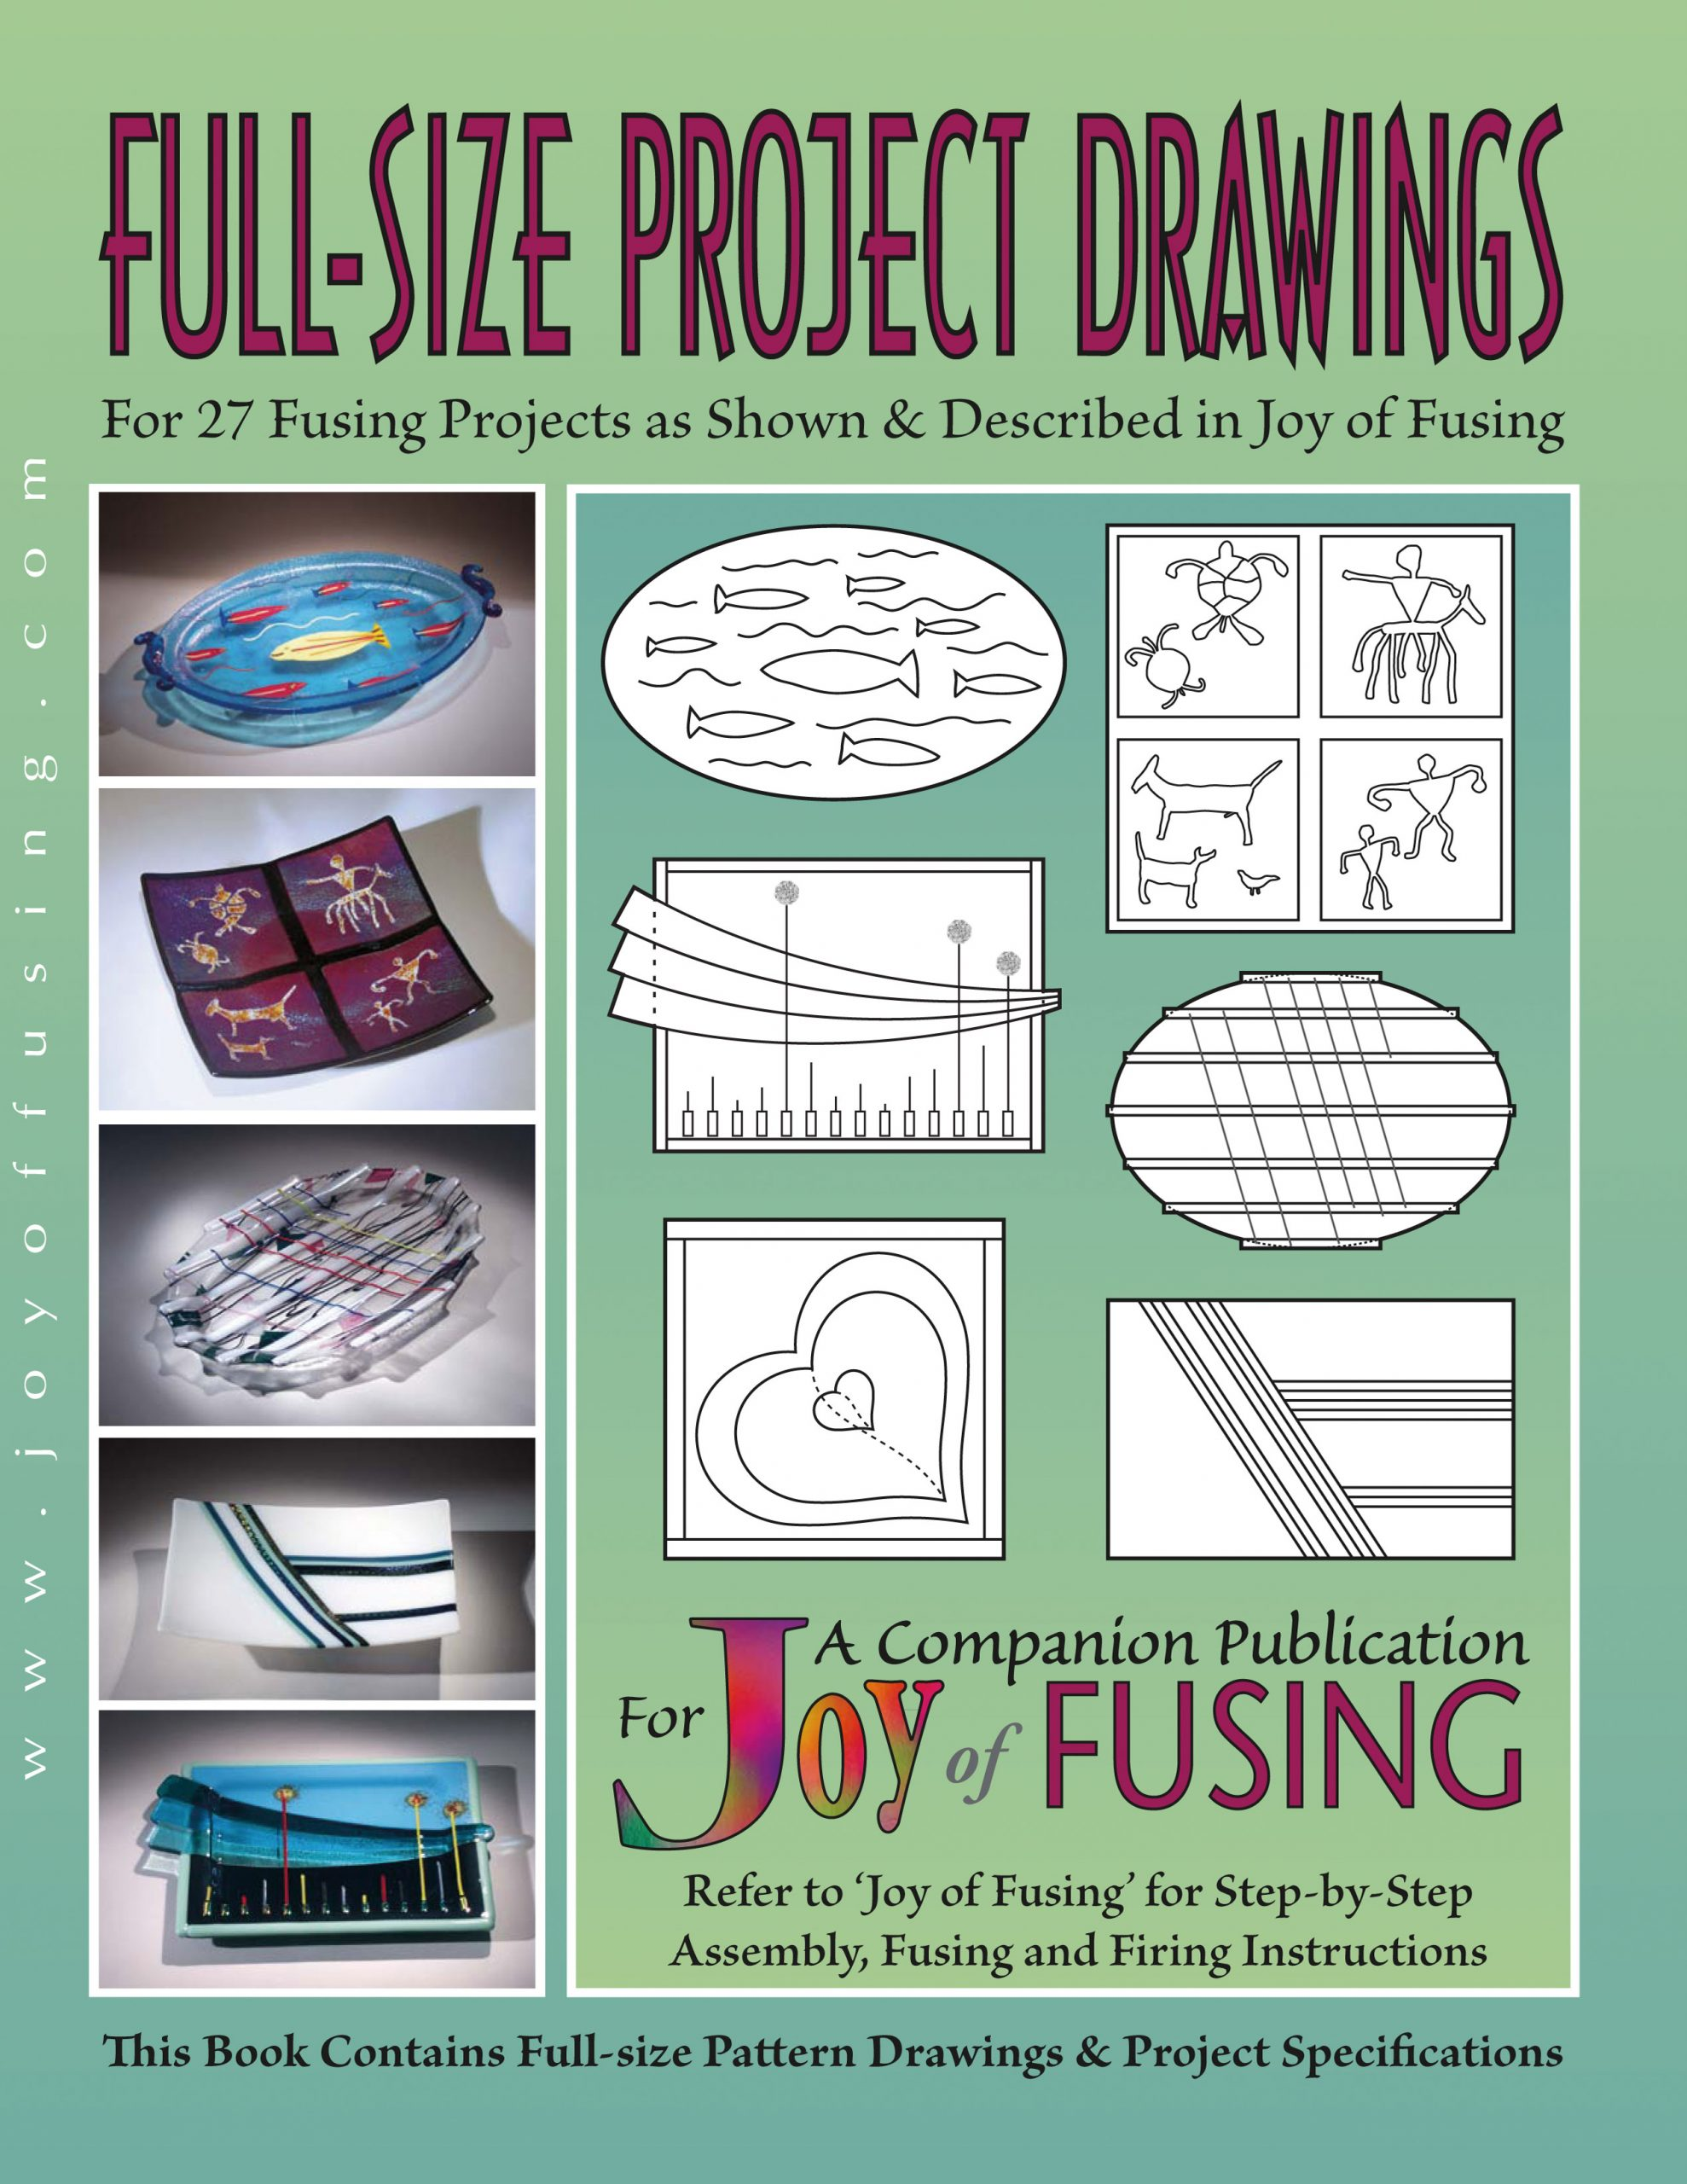 Full-Size Project Drawings For 27 Fusing Projects as Shown /& Described in Joy of Fusing